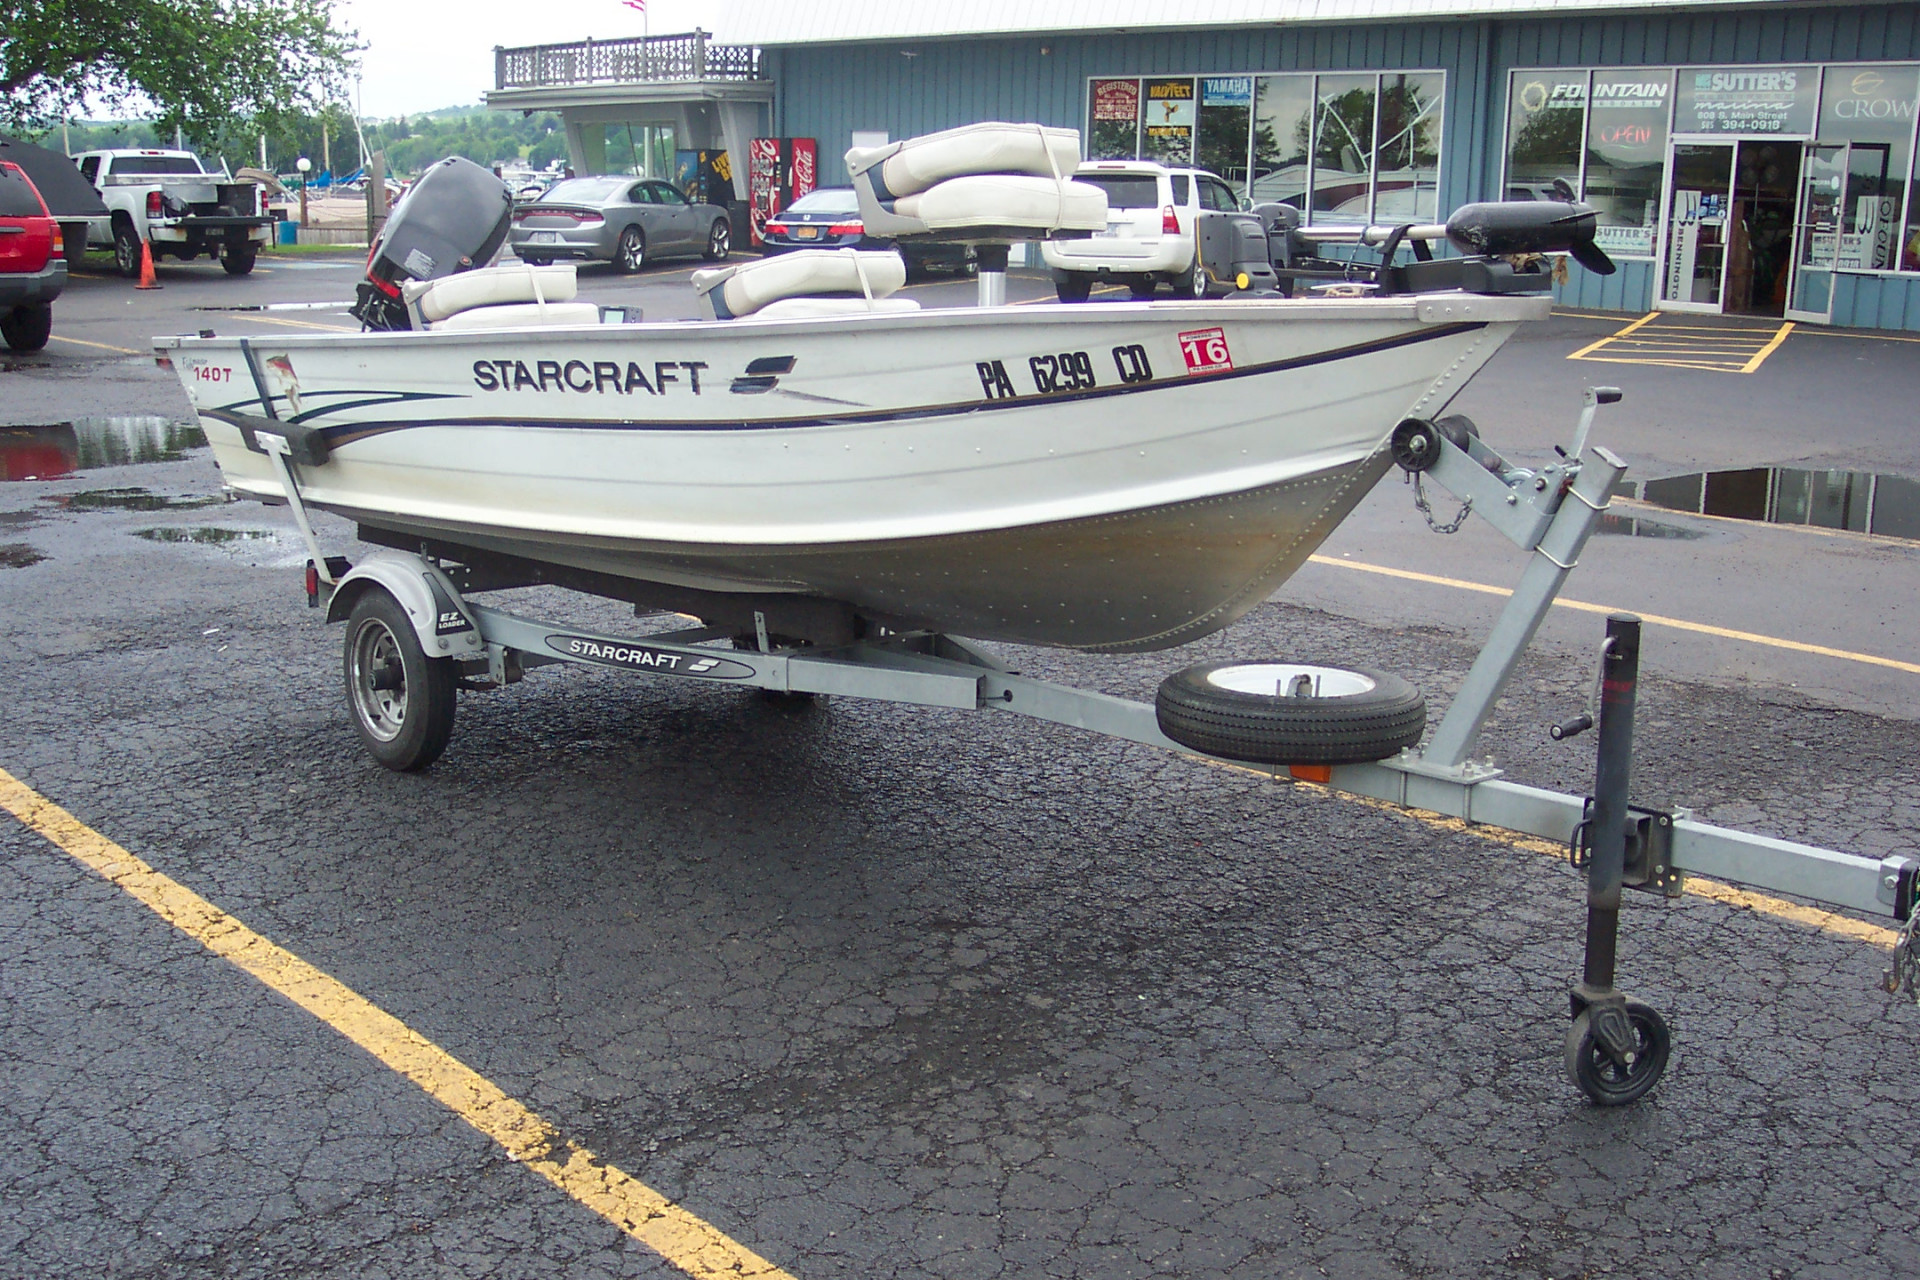 1999 14' STARCRAFT ALUMINUM FISHING BOAT W/ NEWER 25 HP MERCURY 4